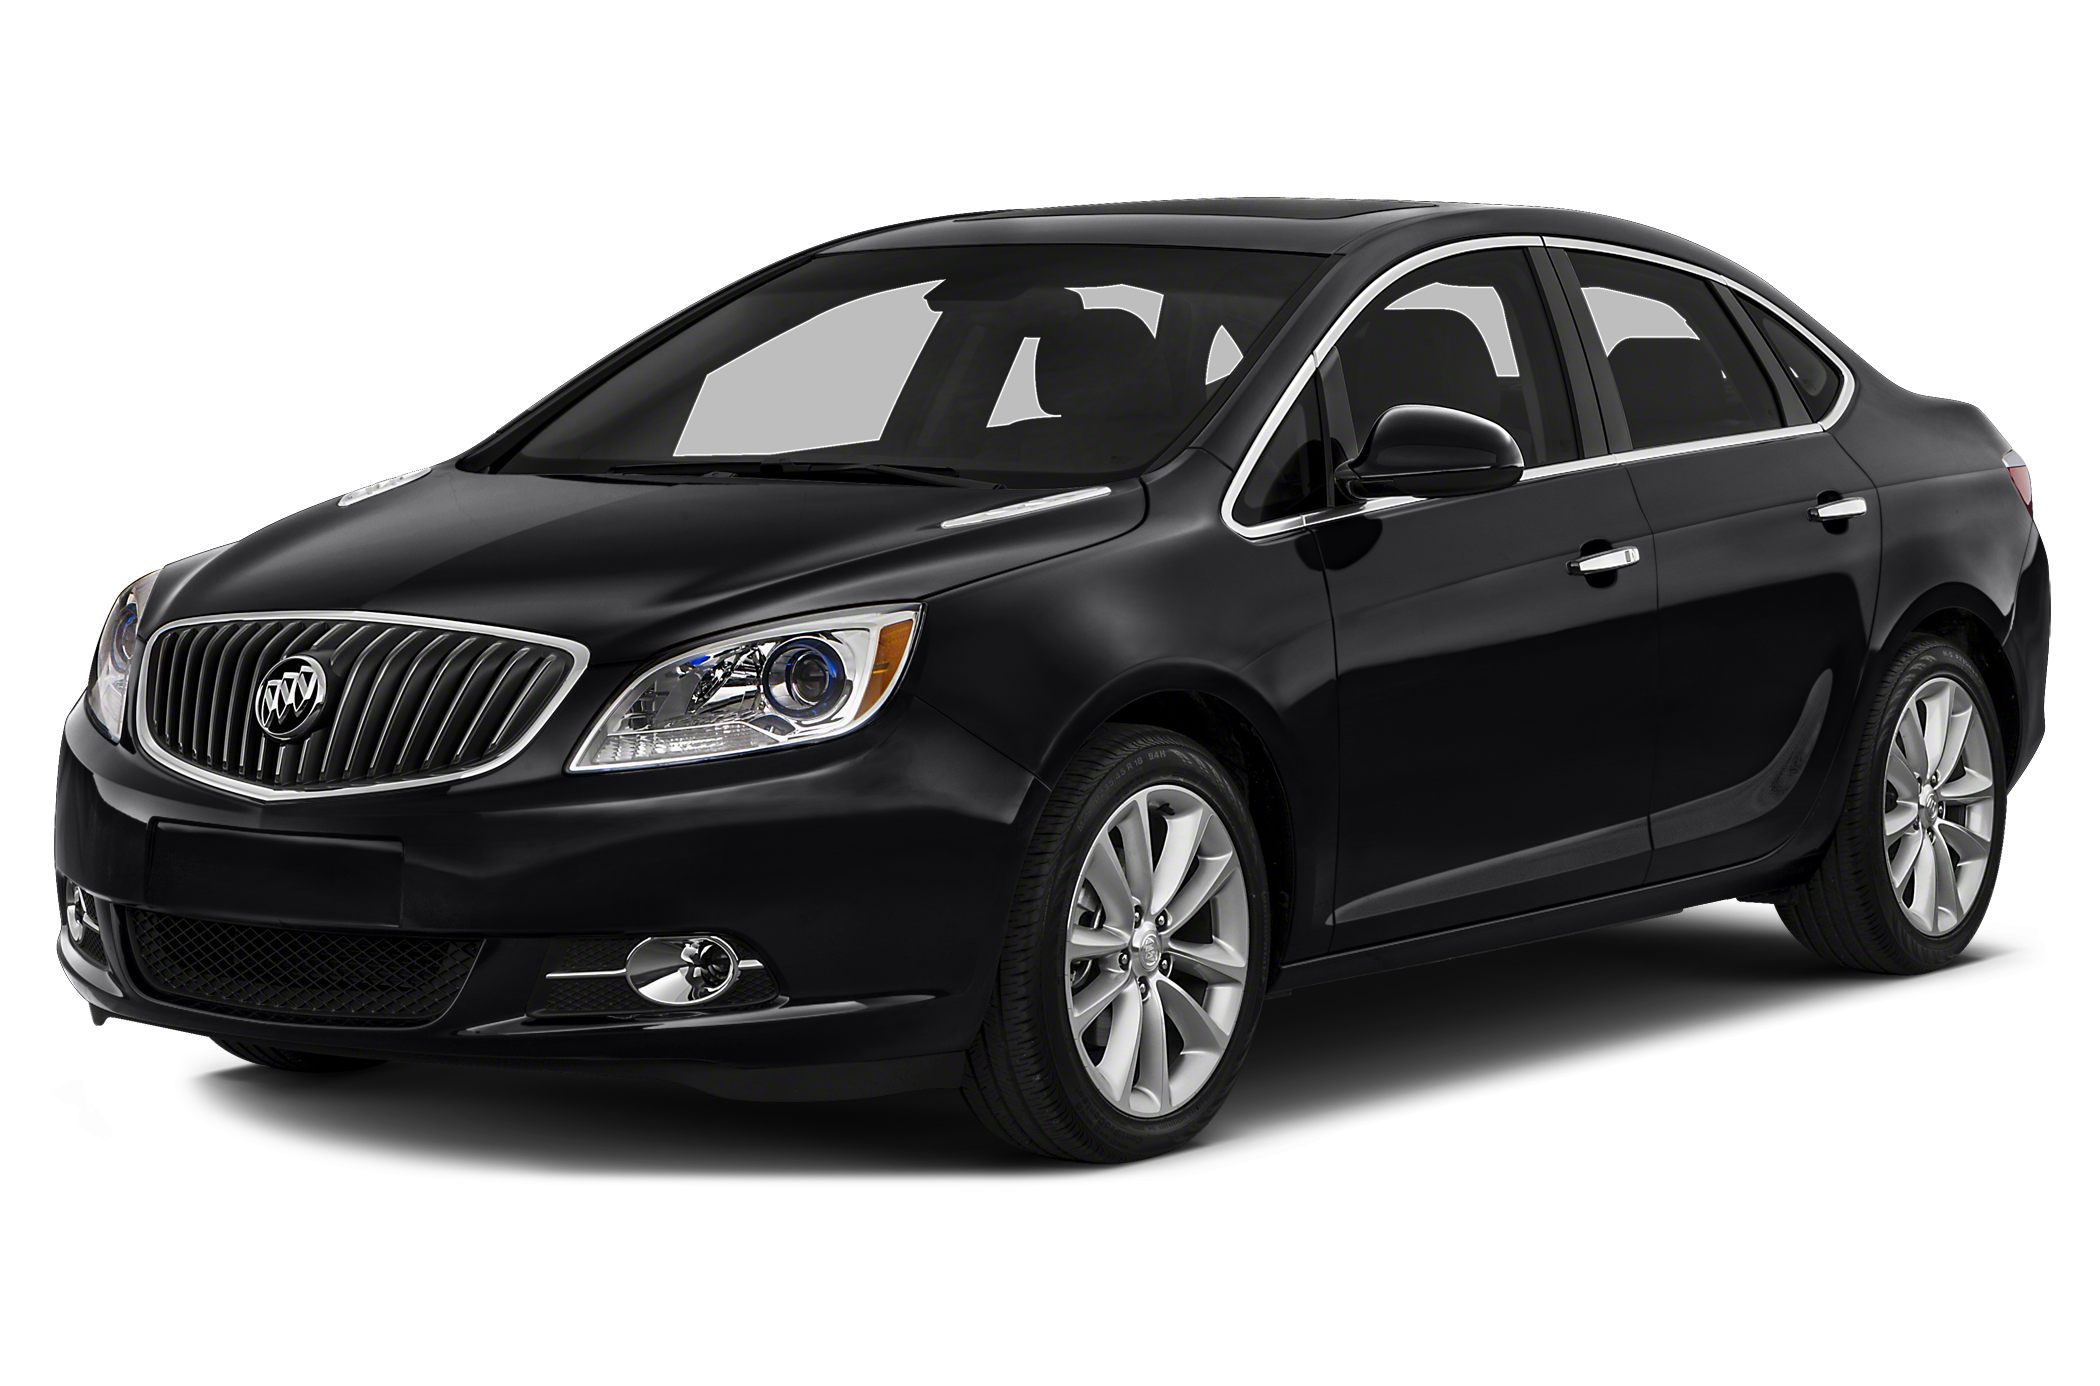 2012 Buick Verano Convenience Group A ONE OWNER LOCAL TRADE-IN WITH LOW MILES Buy with confidence